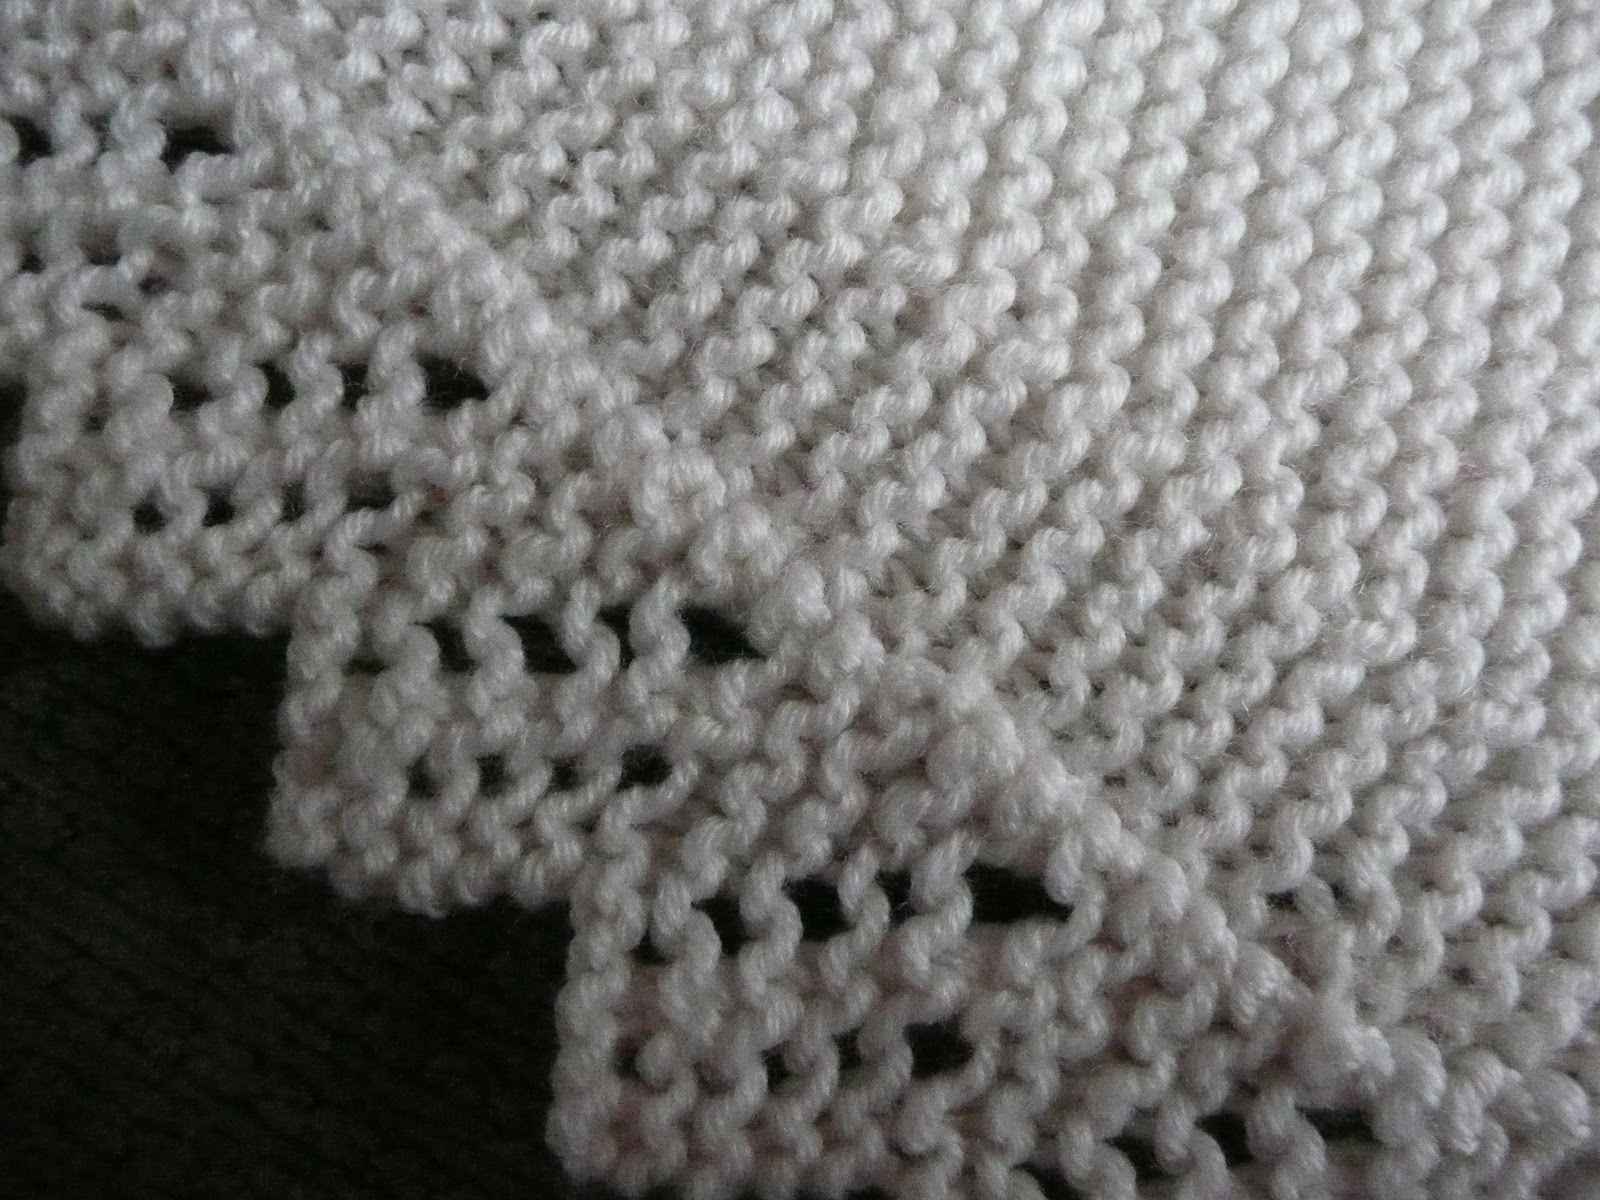 Colorful Knitted Lace Edging Patterns Pictures - Blanket Knitting ...